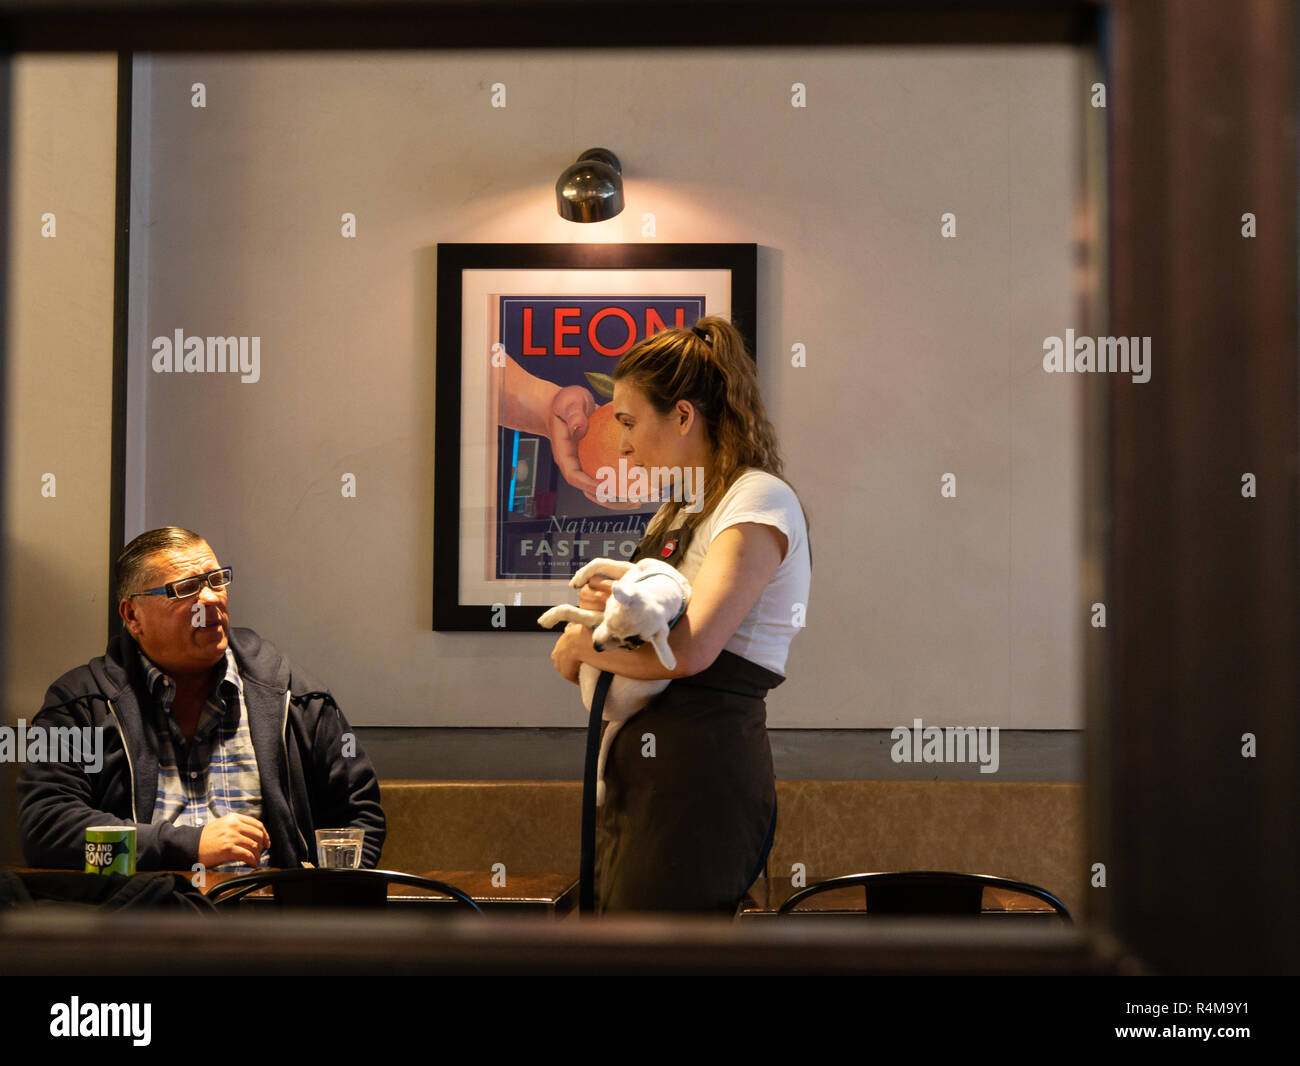 Old man chatting to waitress holding a small dog, Leon restaurant, Brighton, West Sussex, UK - Stock Image